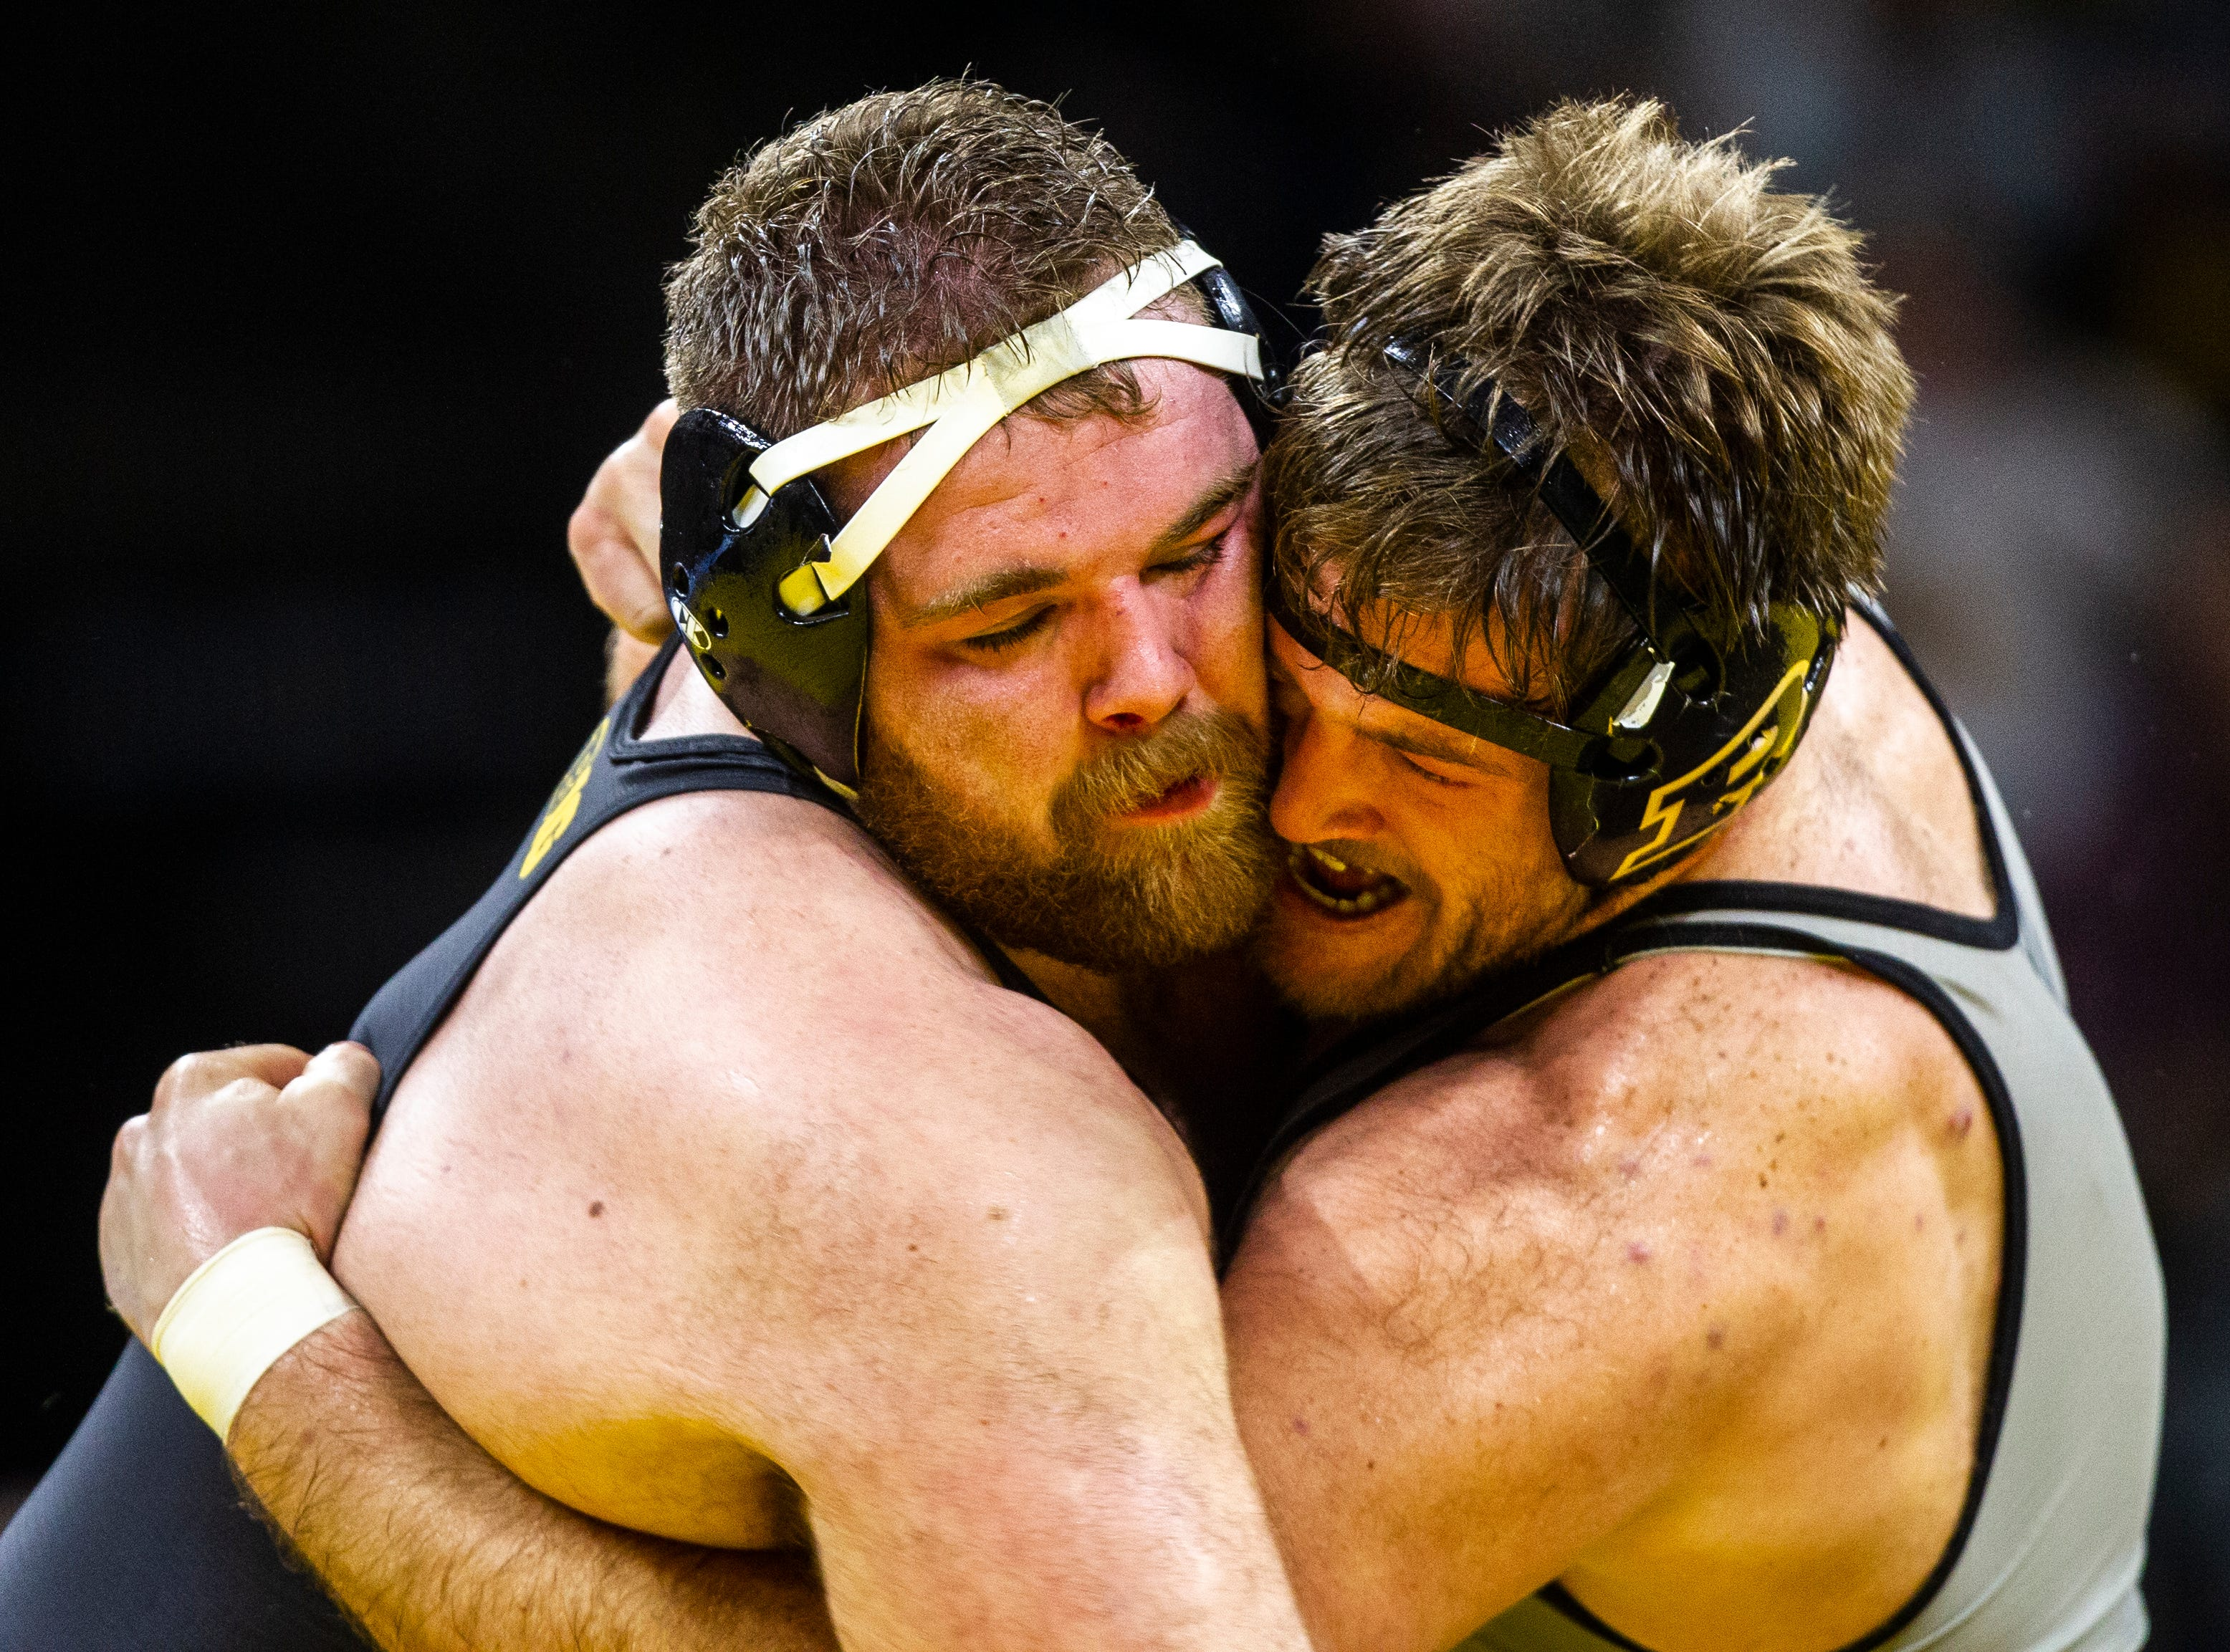 Iowa's Aaron Costello wrestles Purdue's Jacob Aven at 285 during a Big Ten Conference NCAA wrestling dual on Saturday, Nov. 24, 2018, at Carver-Hawkeye Arena in Iowa City.